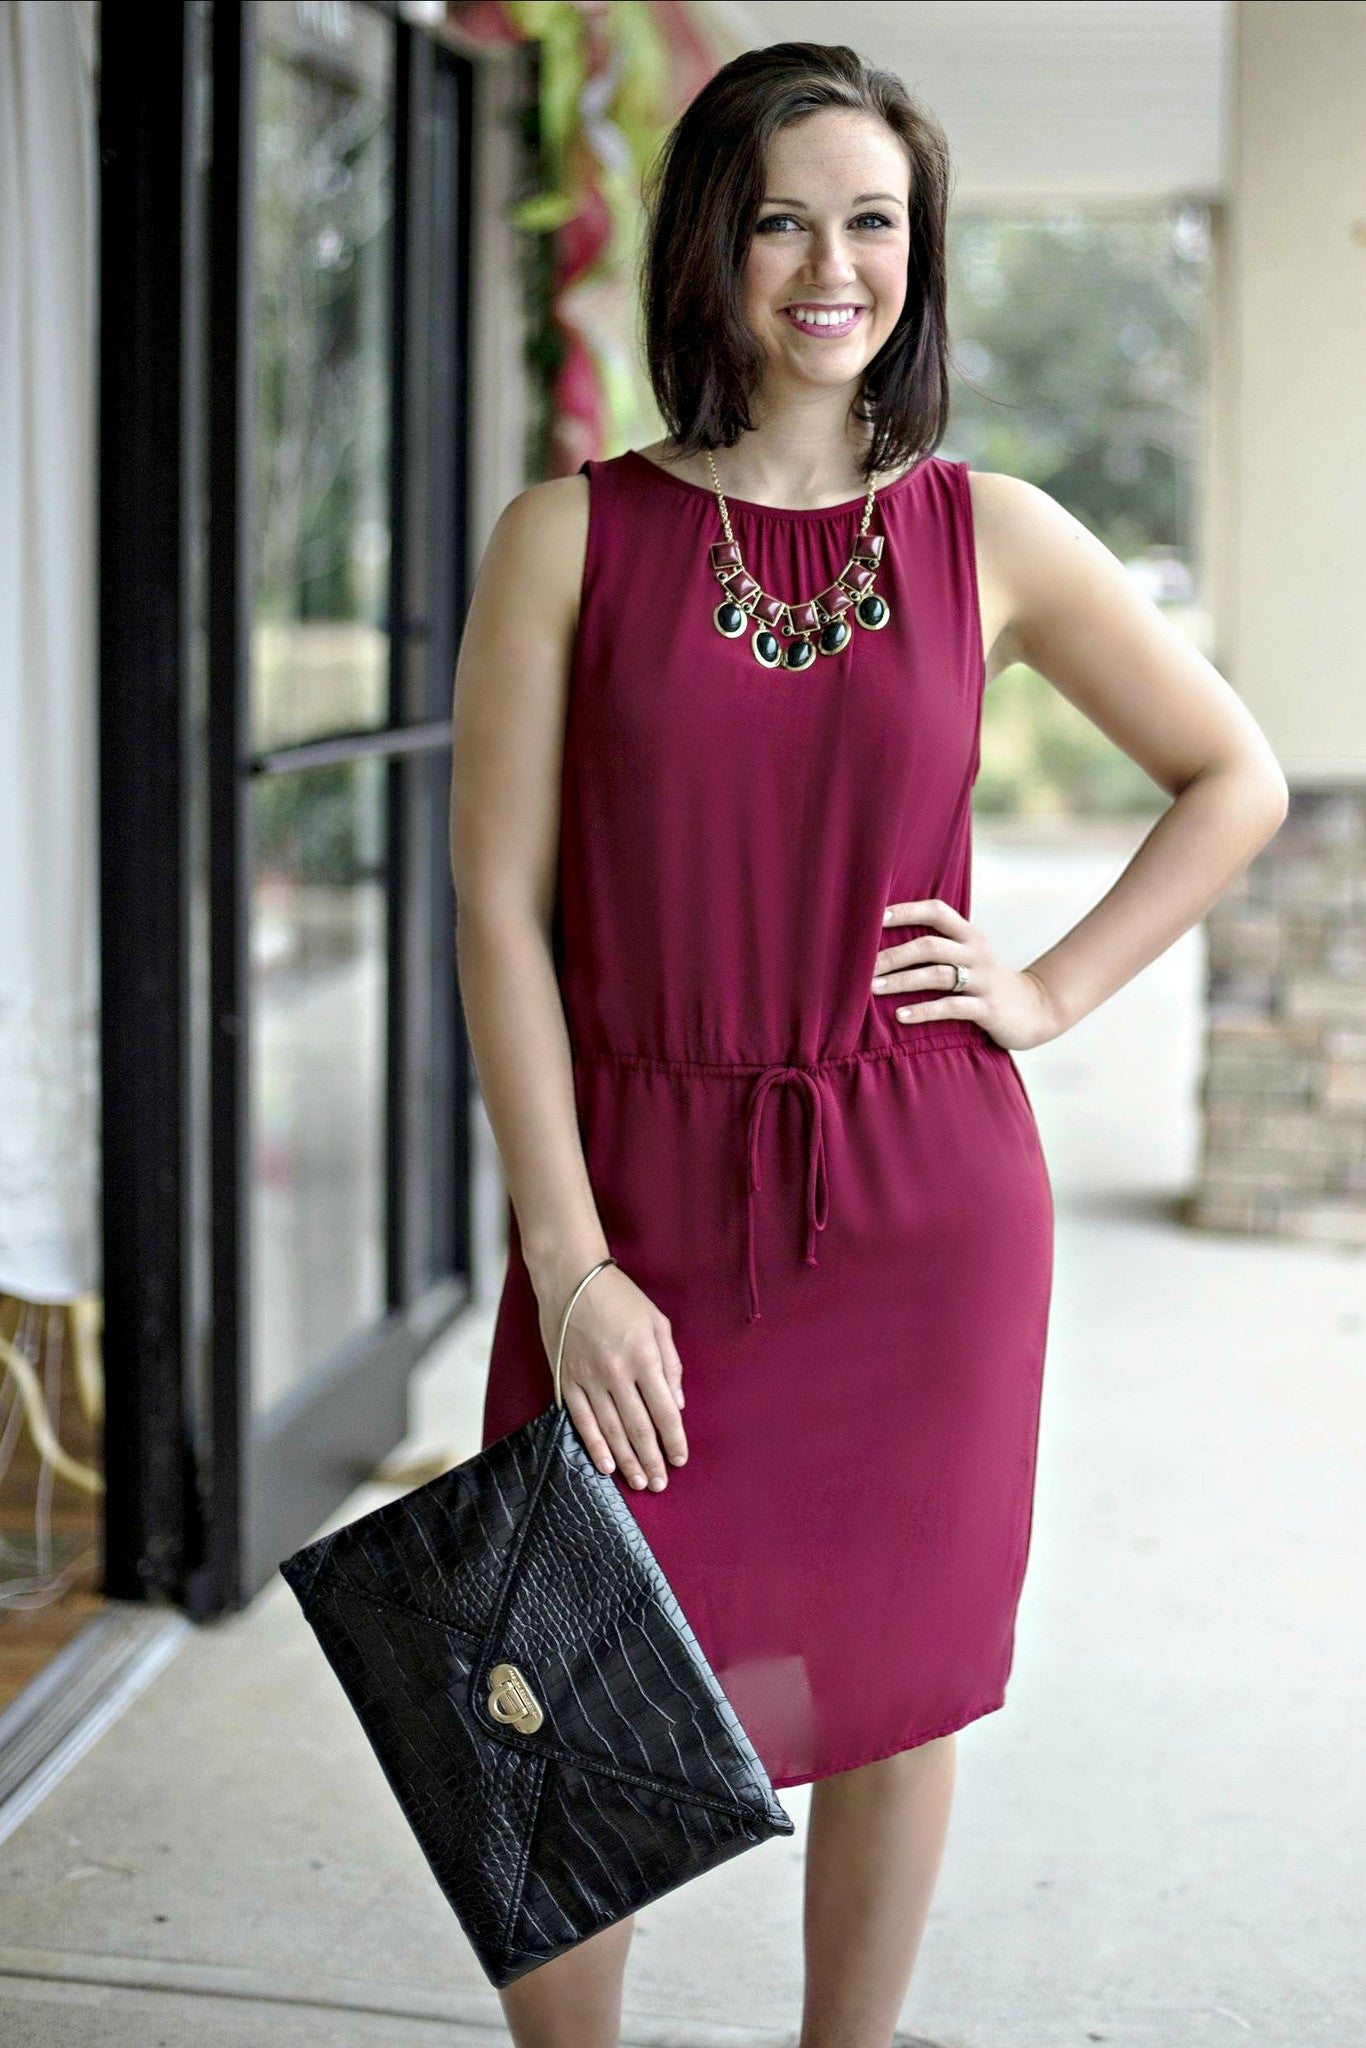 Glam: Christmas Dress, Burgundy